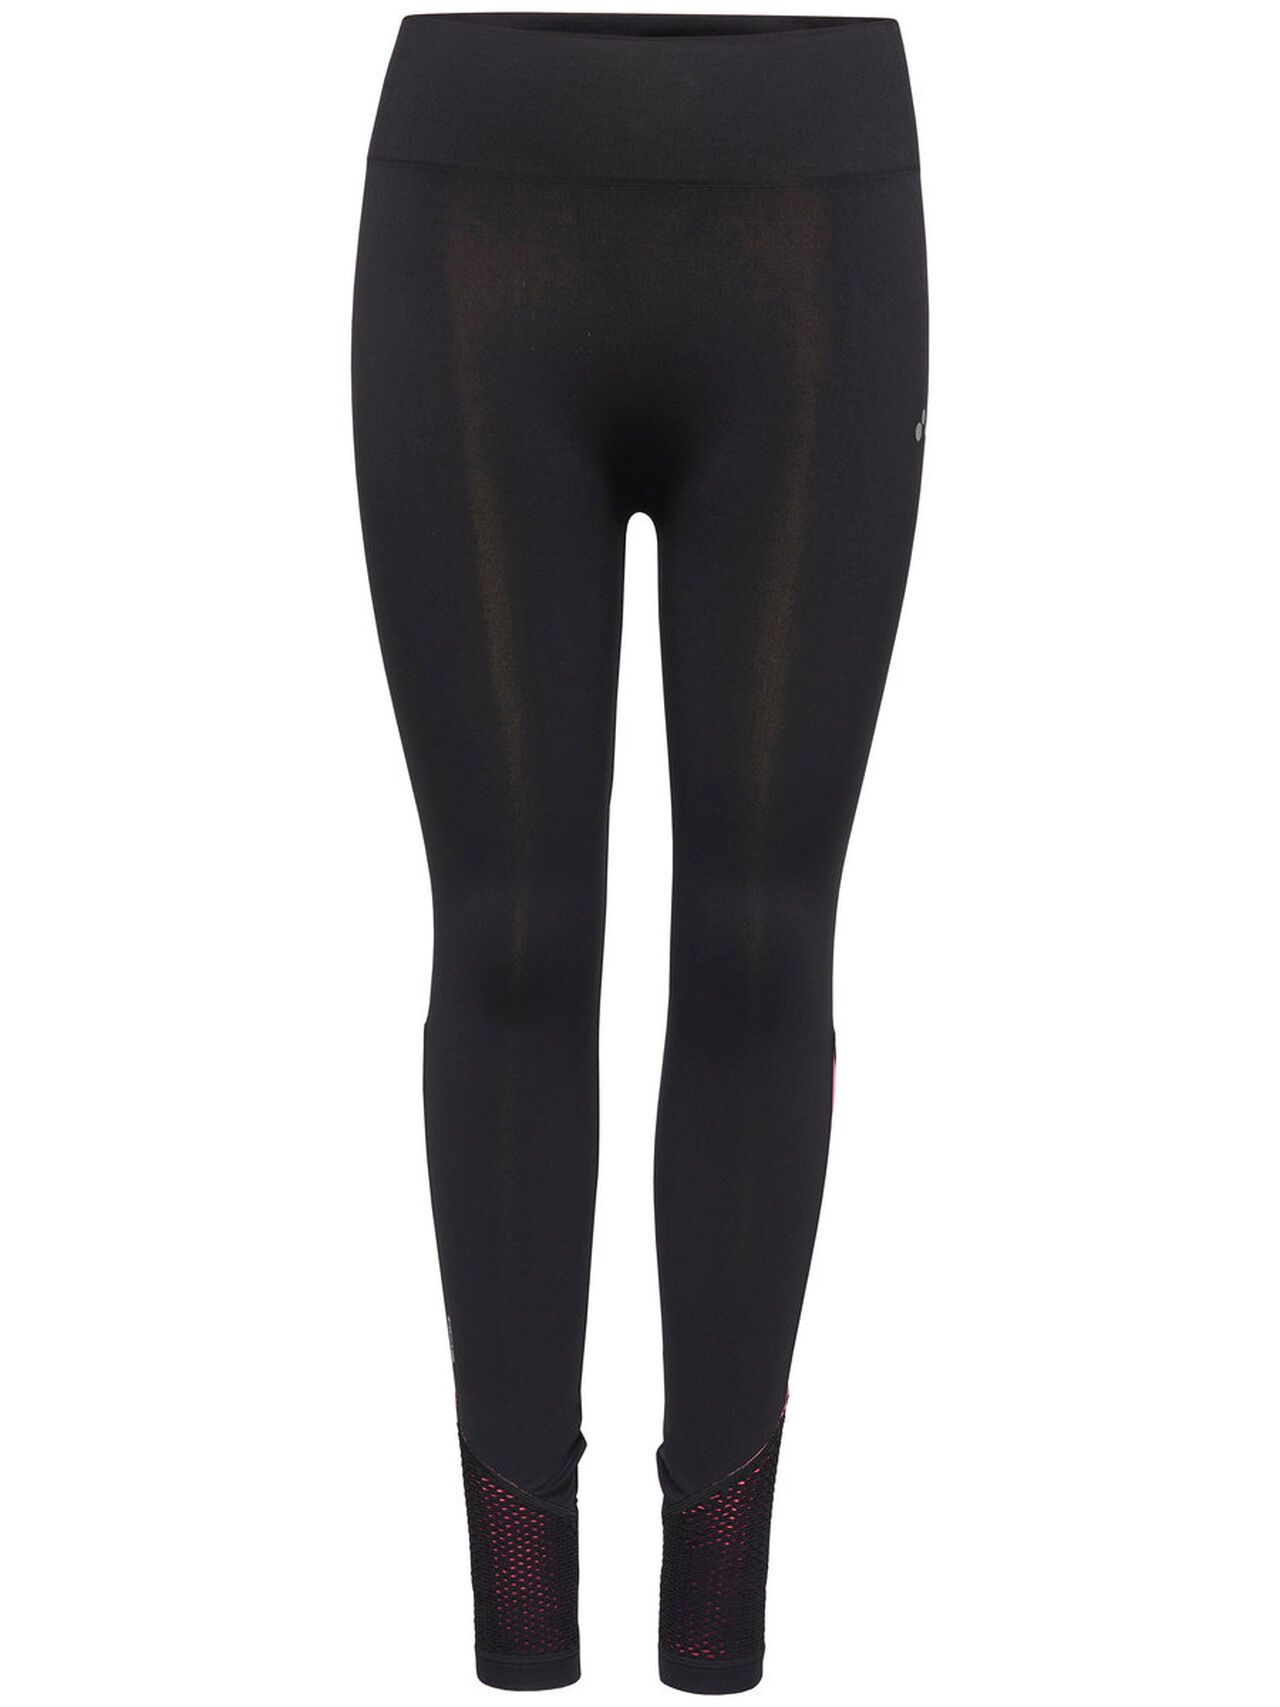 ONLY Seamless Training Tights Women Black